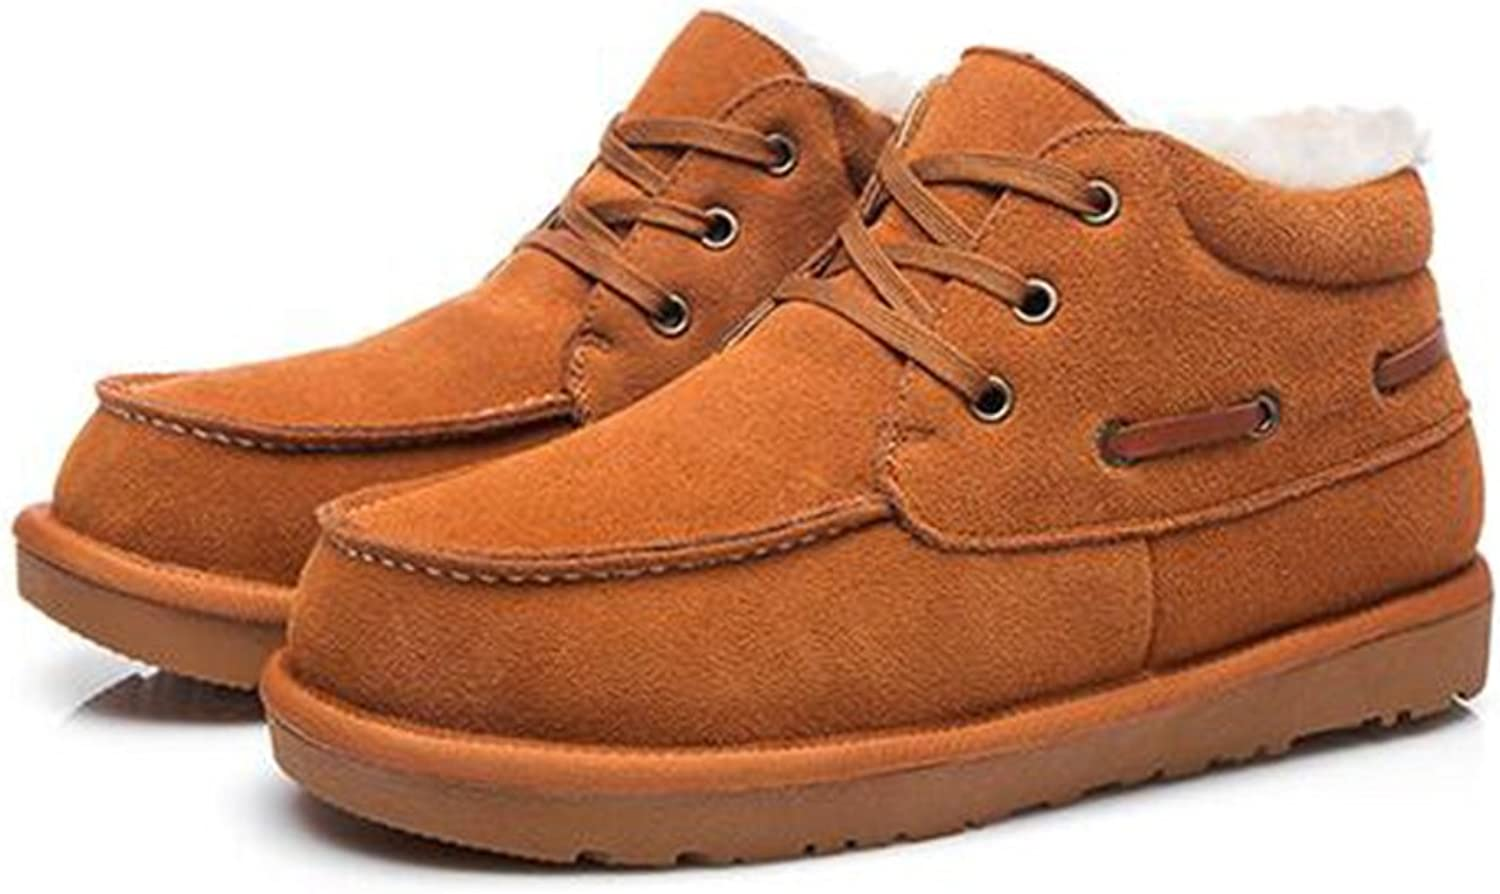 Men's shoes Feifei Winter Outdoor Thickening Keep Warm Cotton shoes 3 colors (color   02, Size   EU 41 UK7.5-8 CN42)